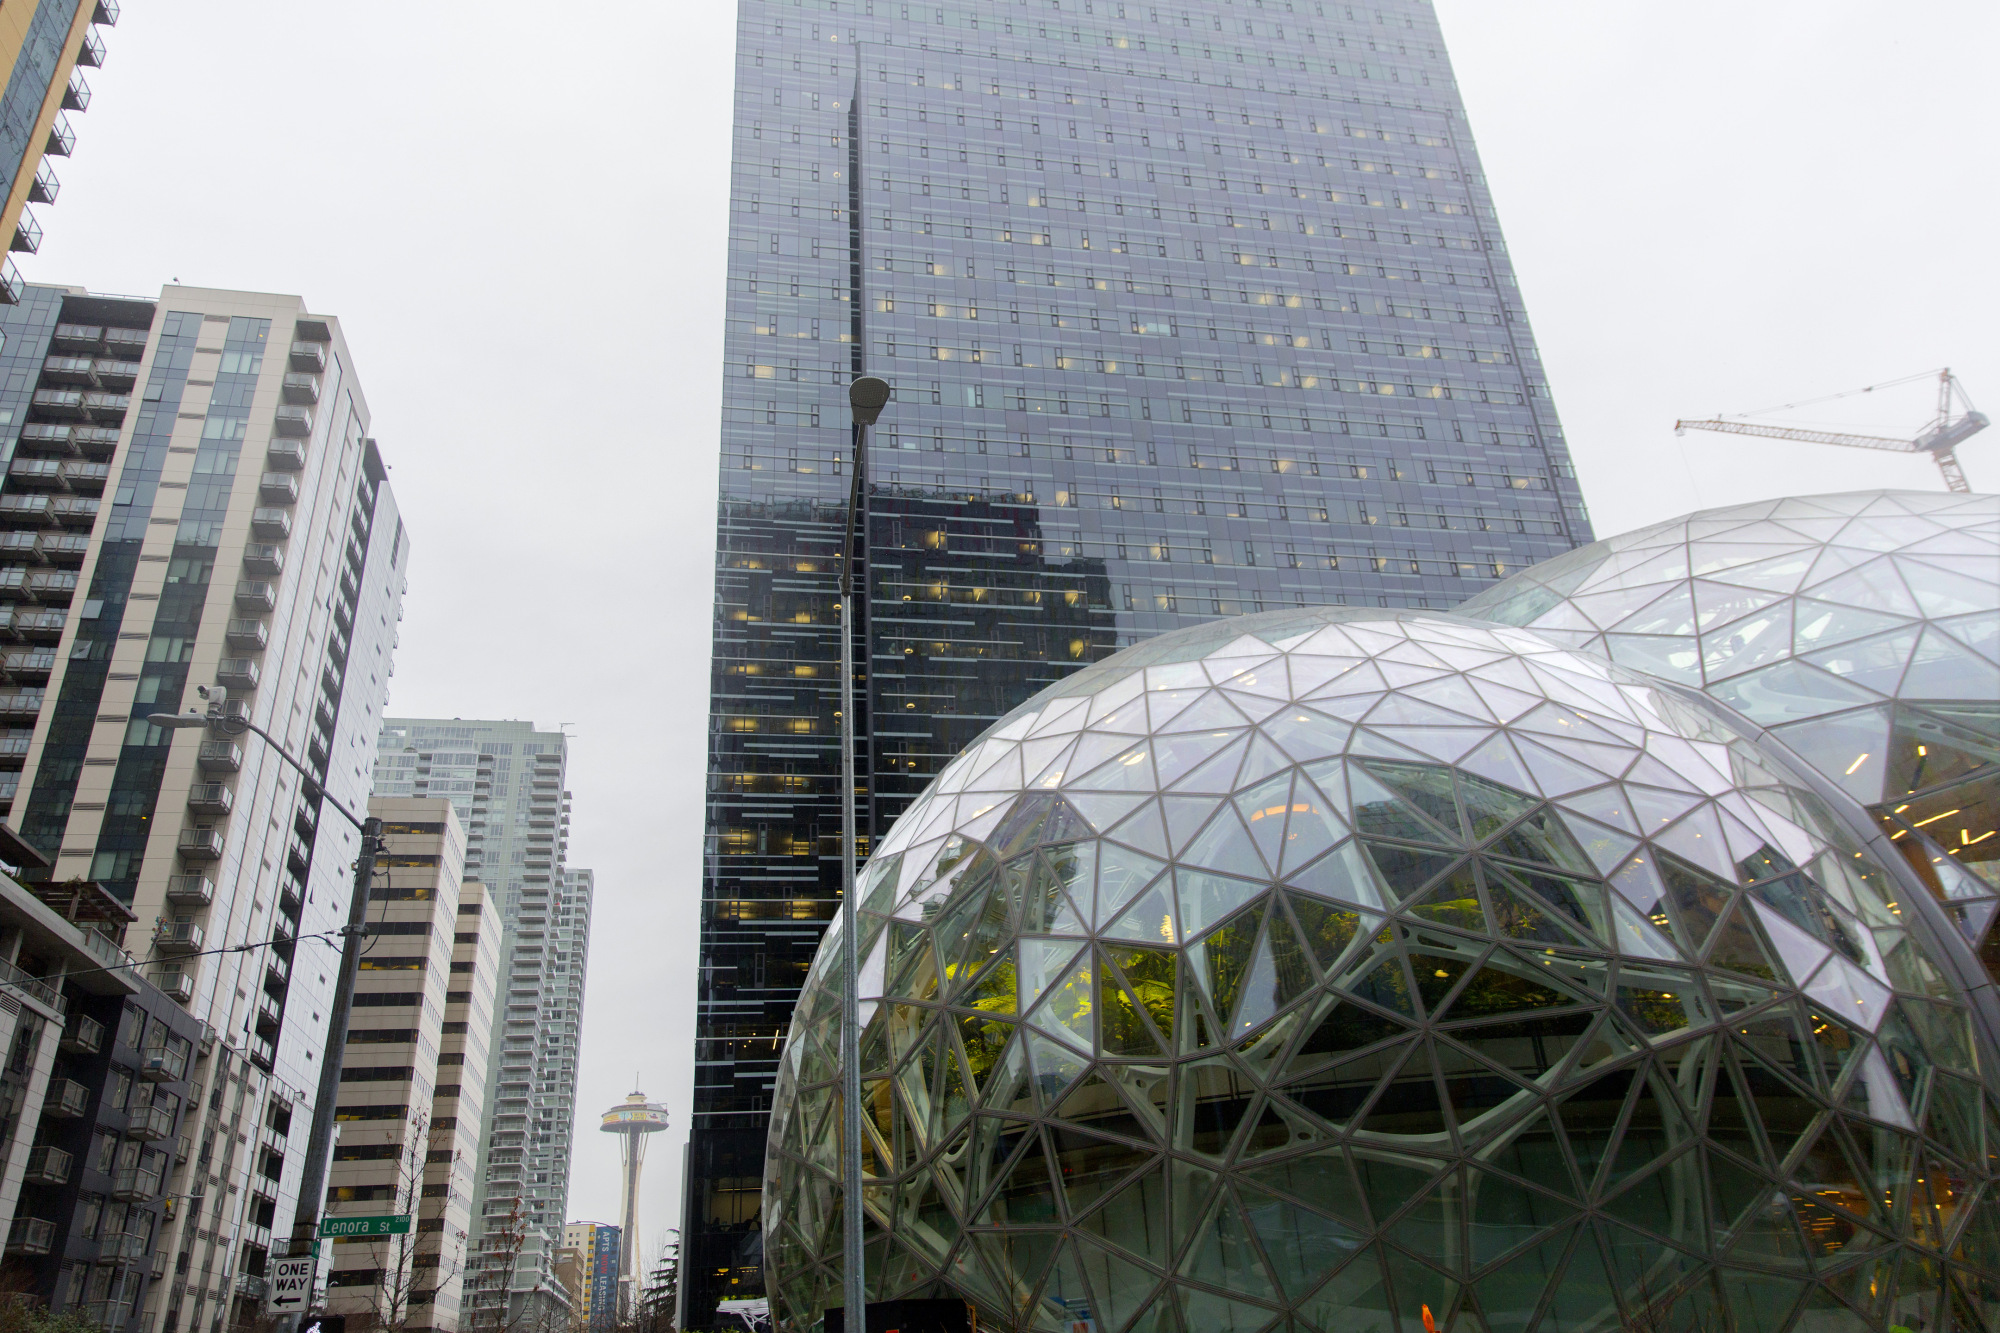 bloomberg.com - Matt Day - Amazon Employees Embrace Activism, Echoing Peers in Silicon Valley